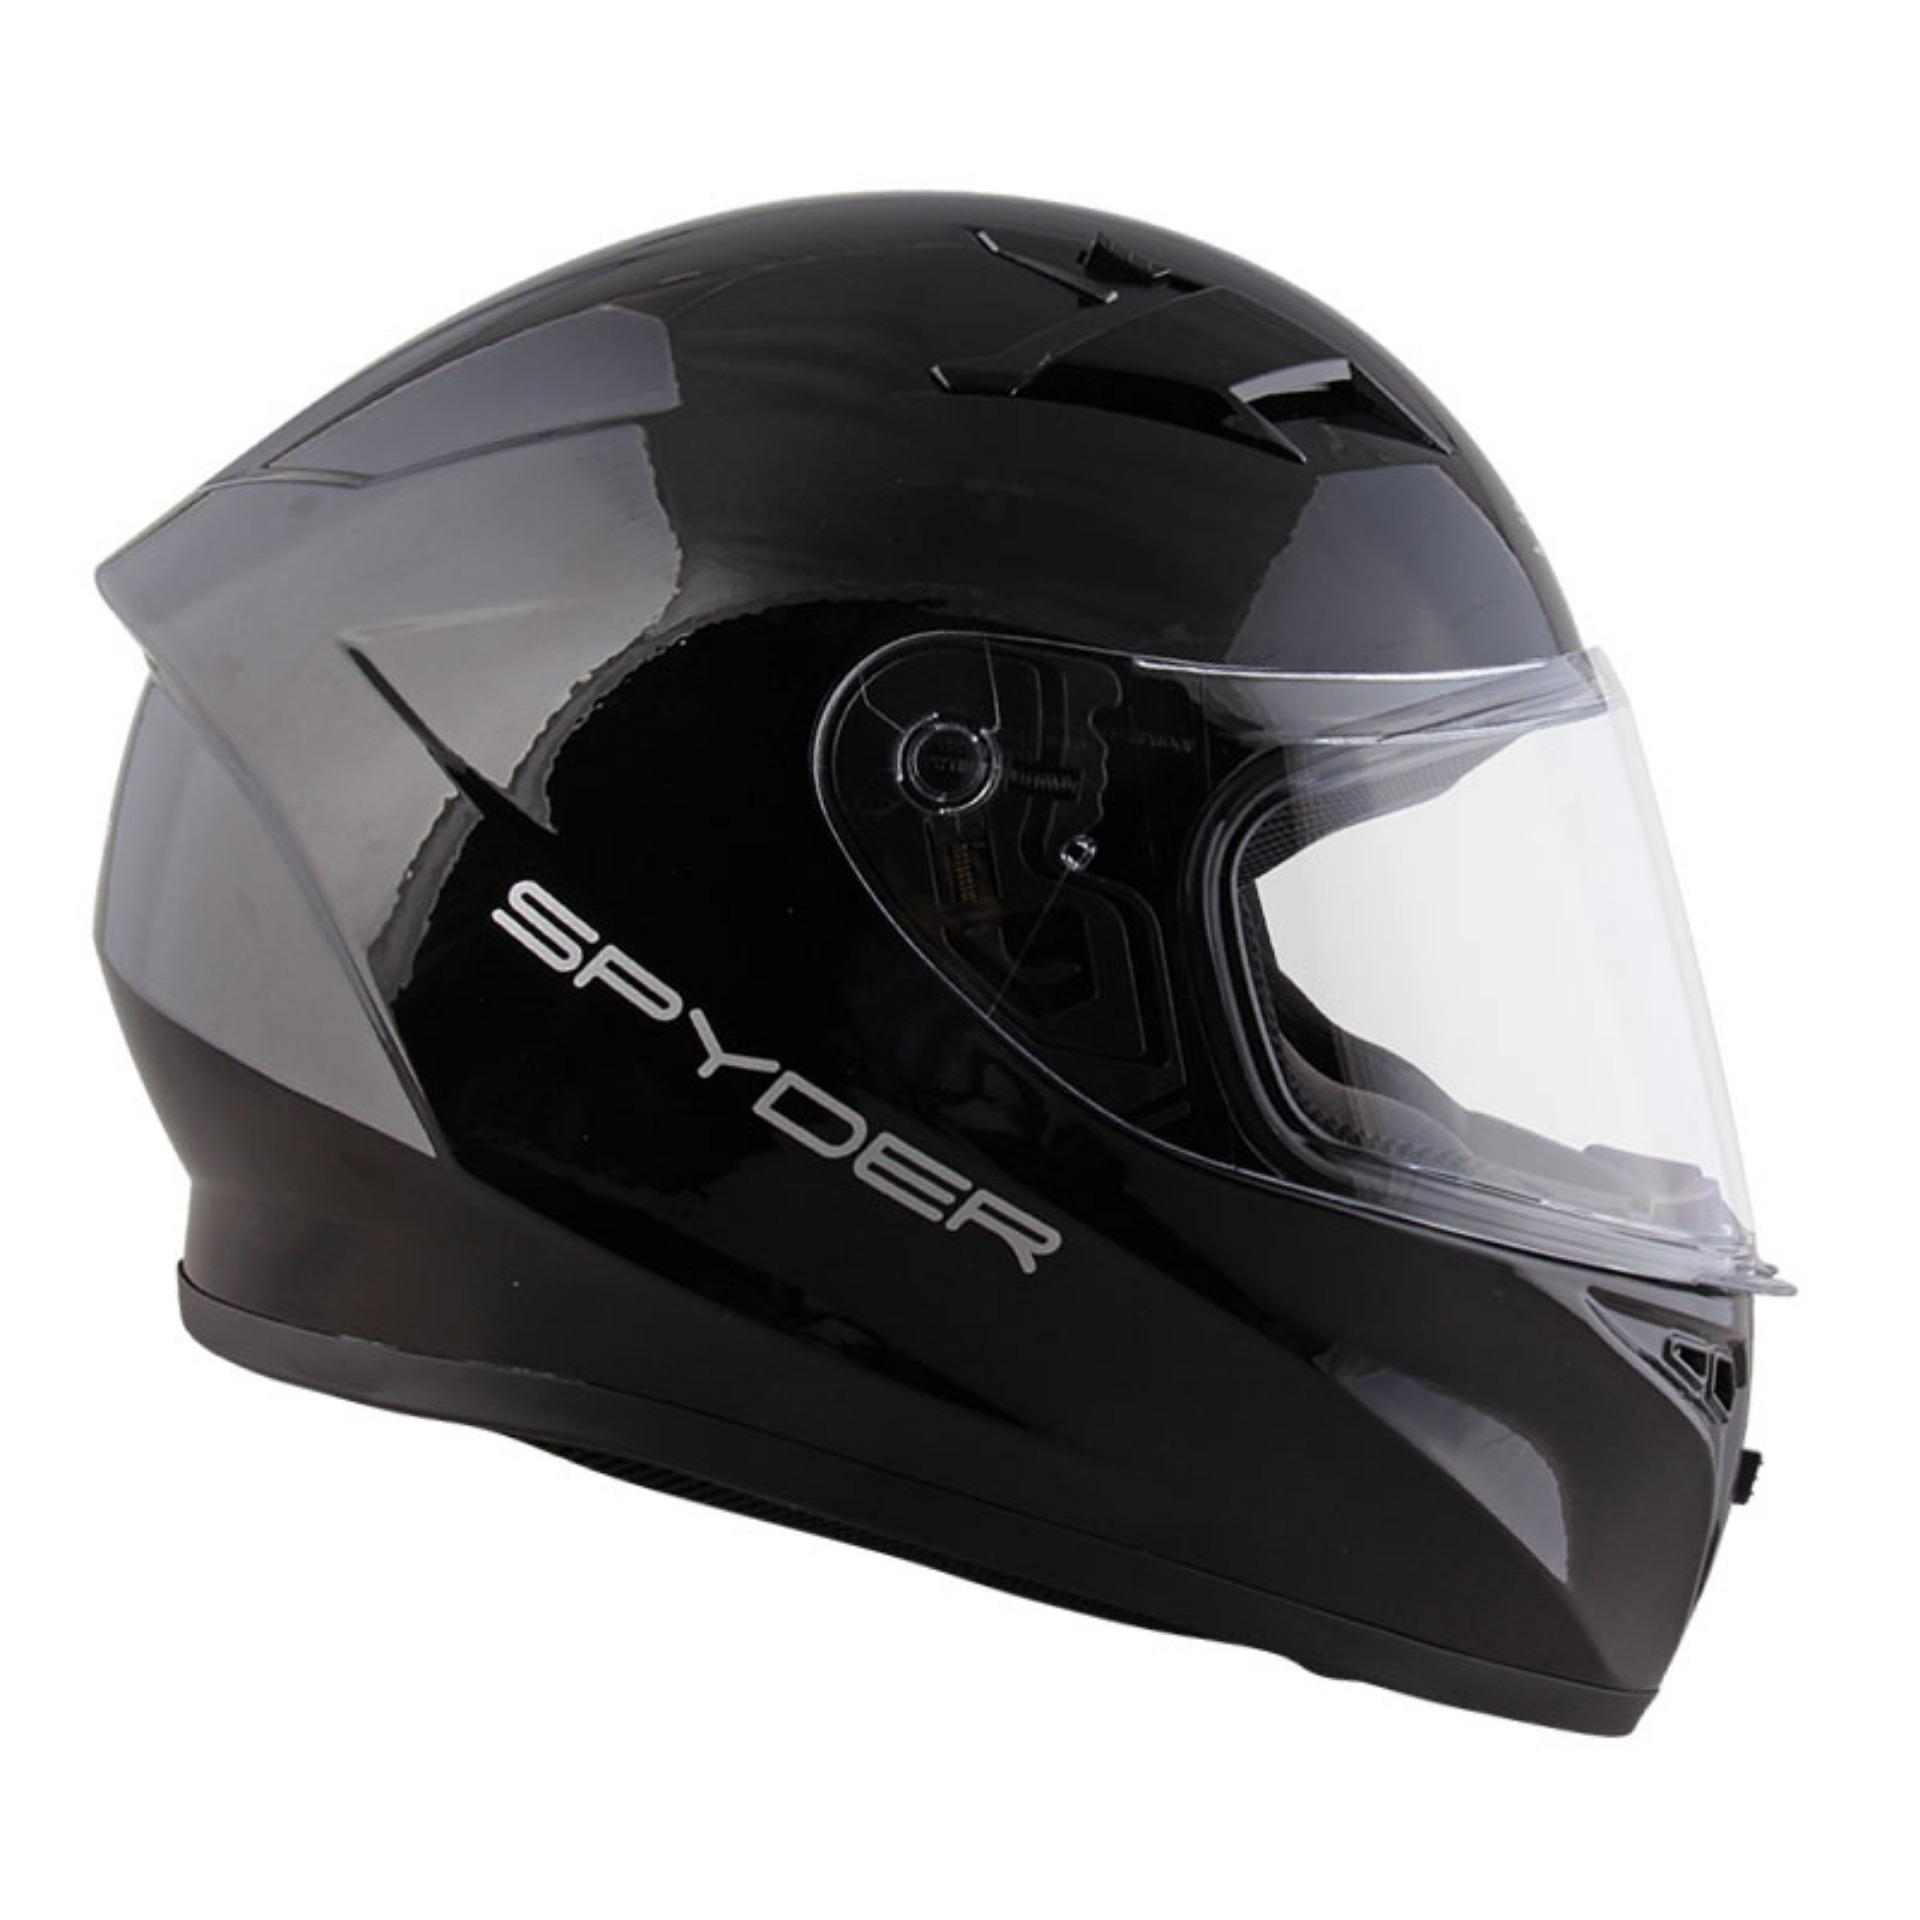 dc910f14 Spyder Philippines -Spyder Helmets for sale - prices & reviews | Lazada